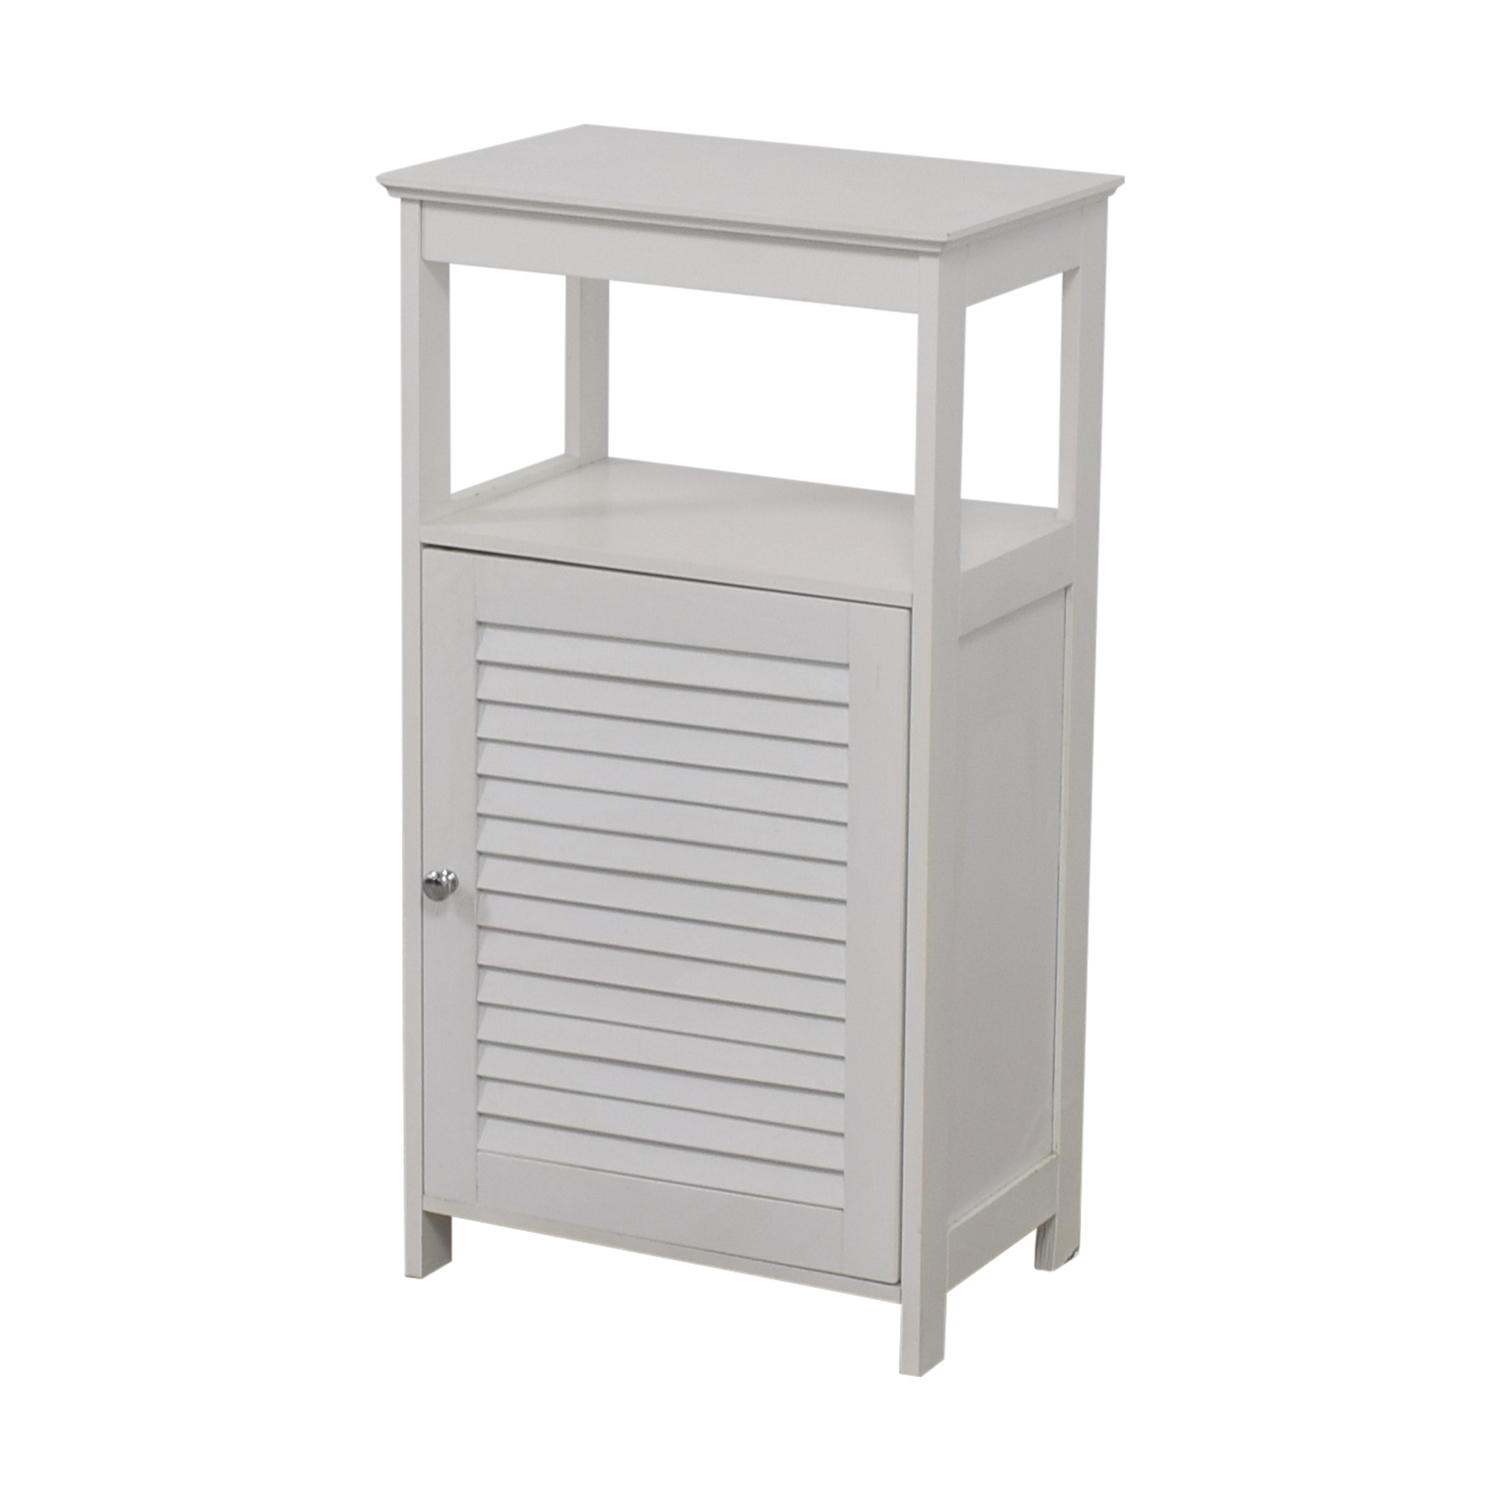 White Bathroom Cabinet / Storage